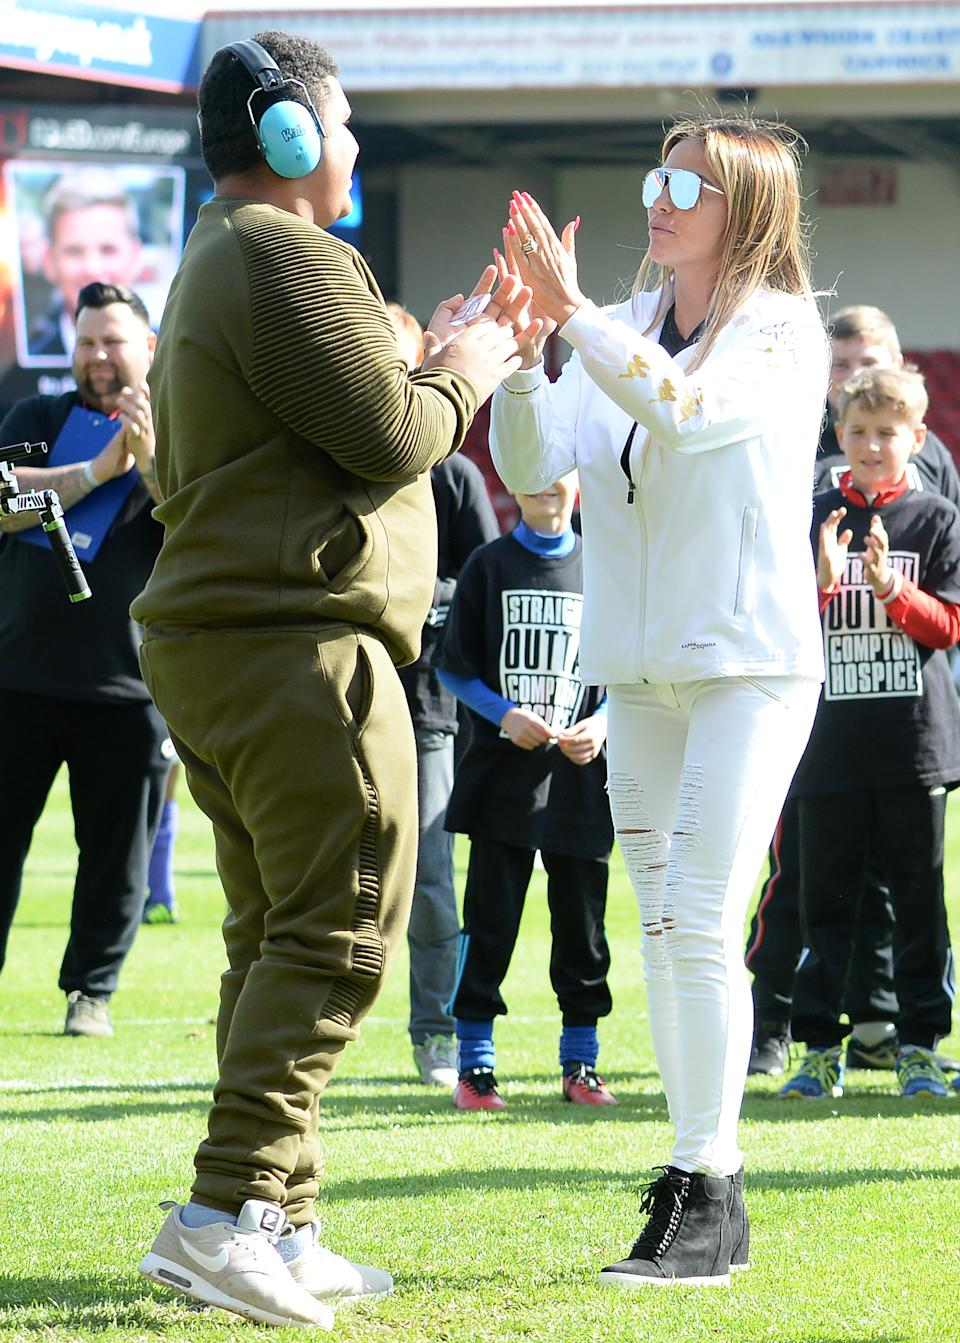 Katie Price and Son, Harvey attend Sellebrity Soccer Match in aid of Smile For Joel and Compton Hospice at Banks' Stadium on May 13, 2017 in Walsall, England.  (Photo by Eamonn M. McCormack/Getty Images)